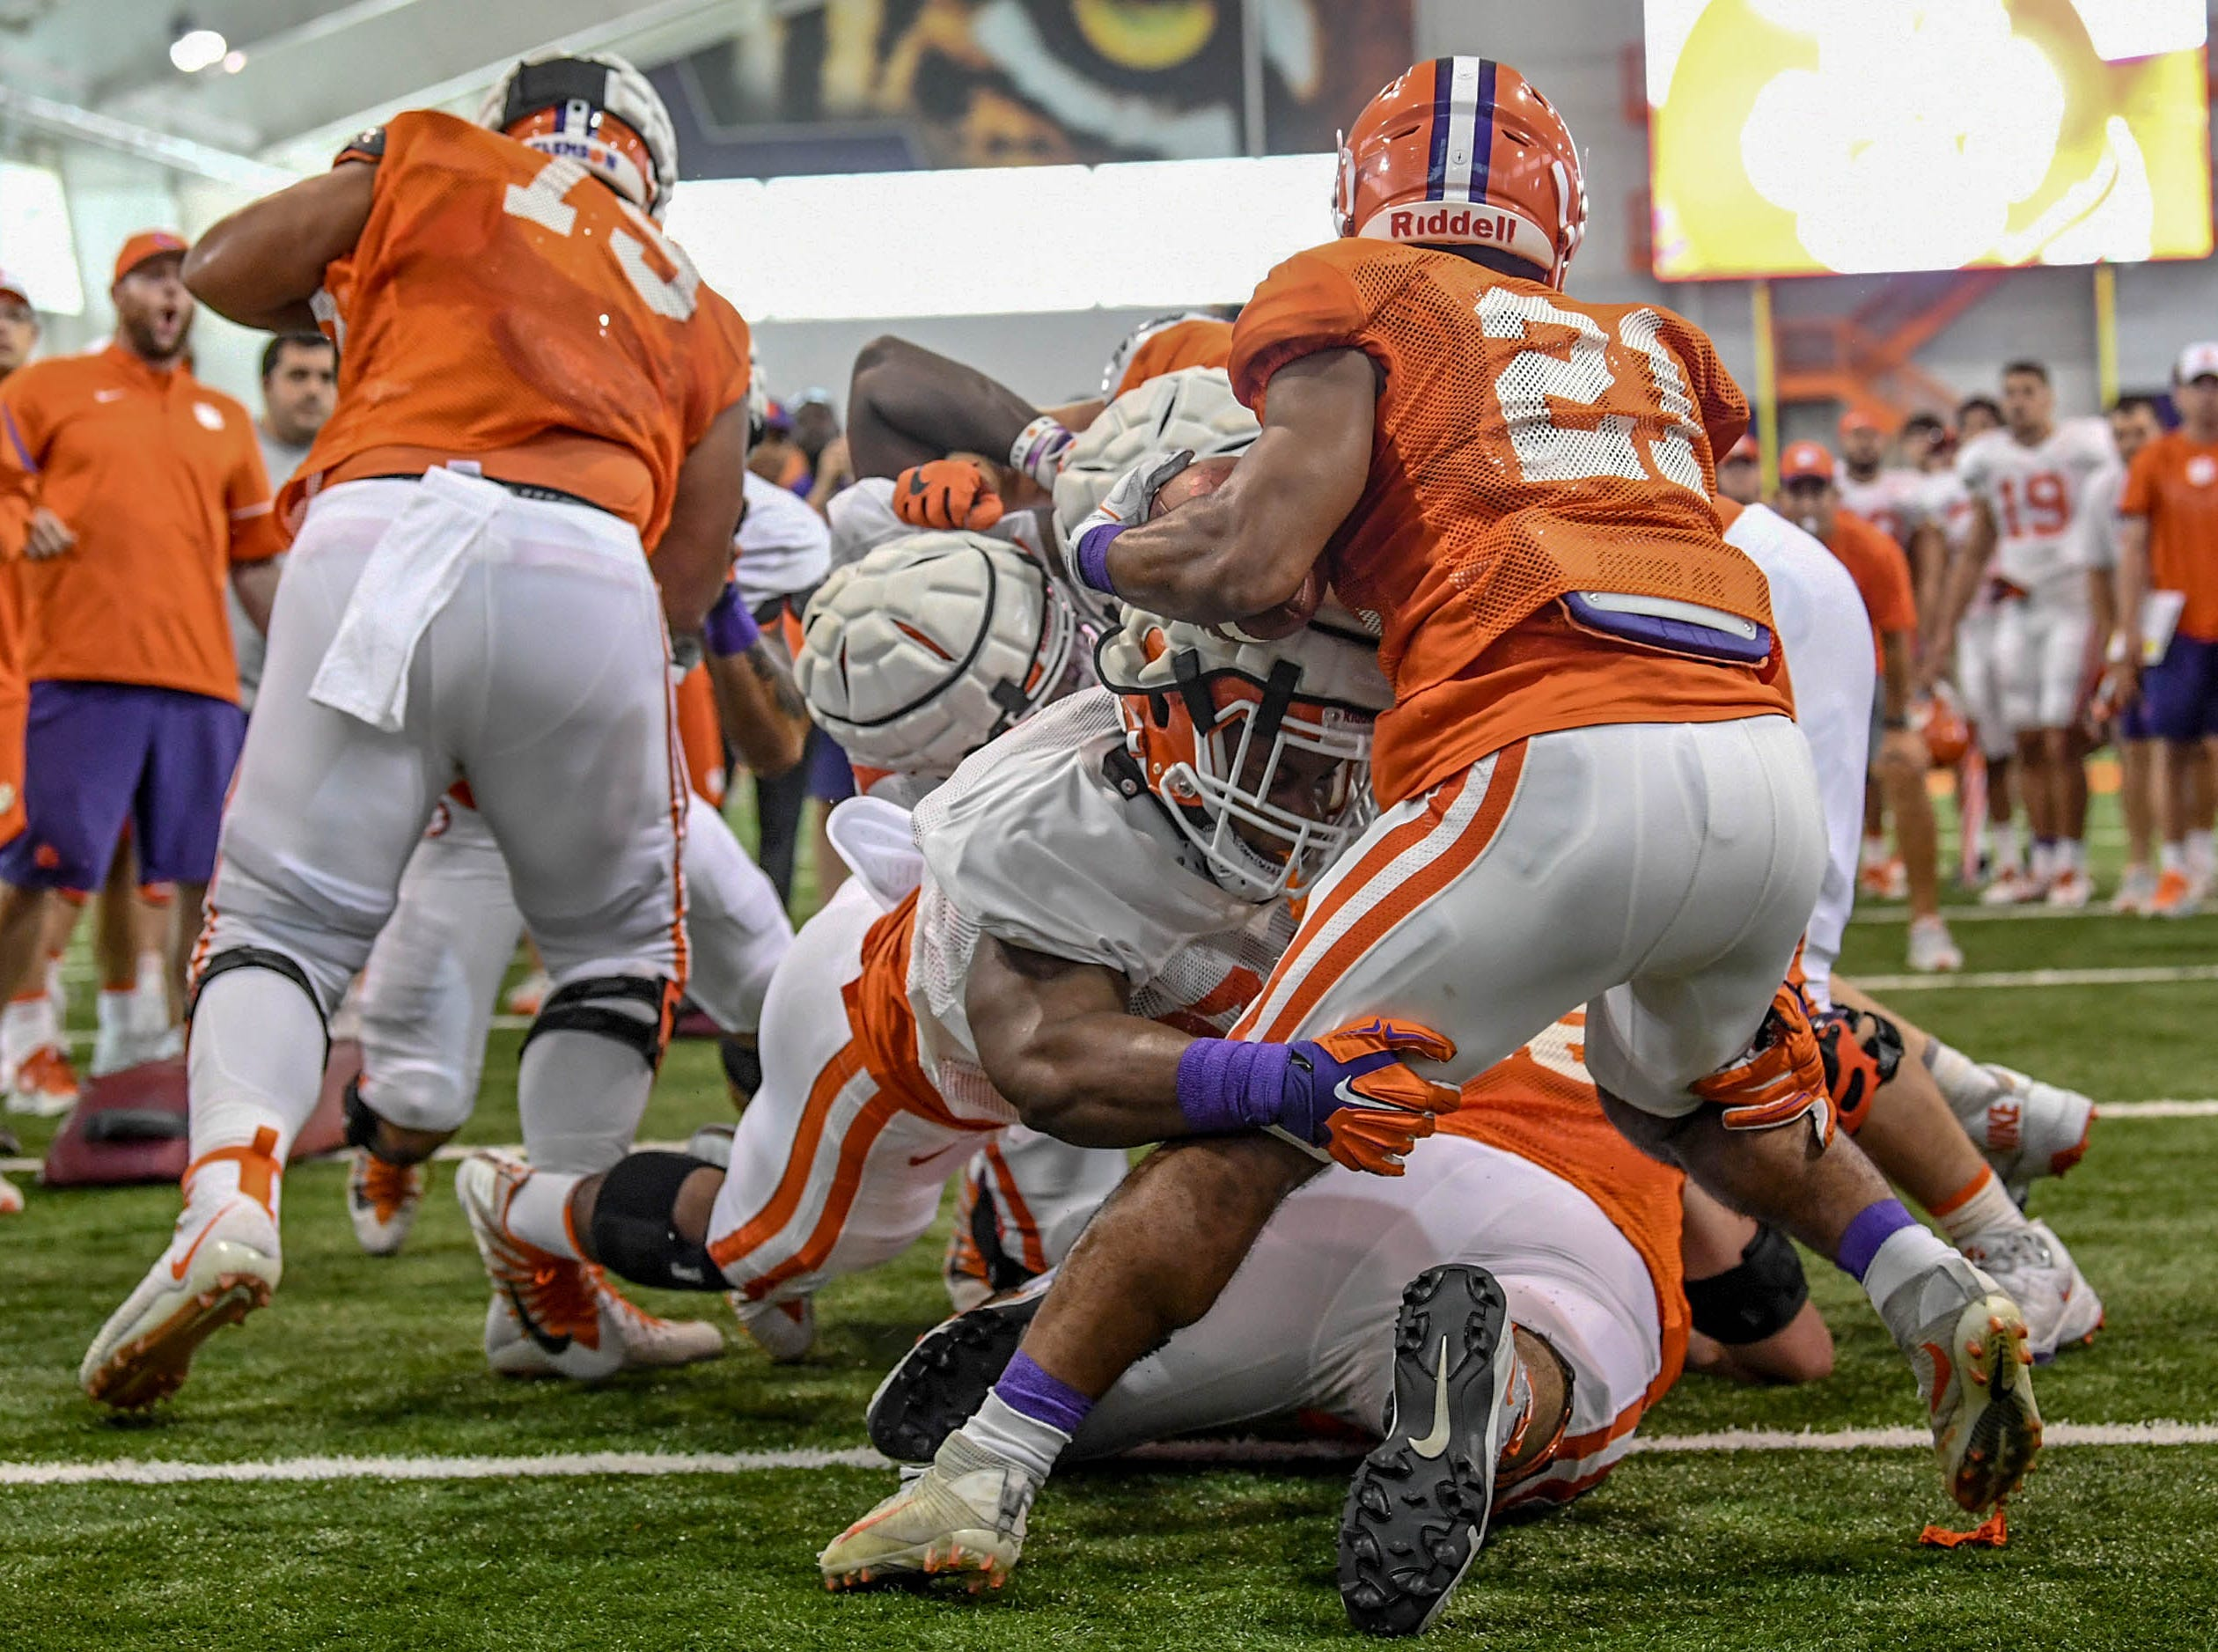 Clemson defensive end Xavier Kelly (22) tackles running back Darien Rencher (21) during fall practice in Clemson on Wednesday.